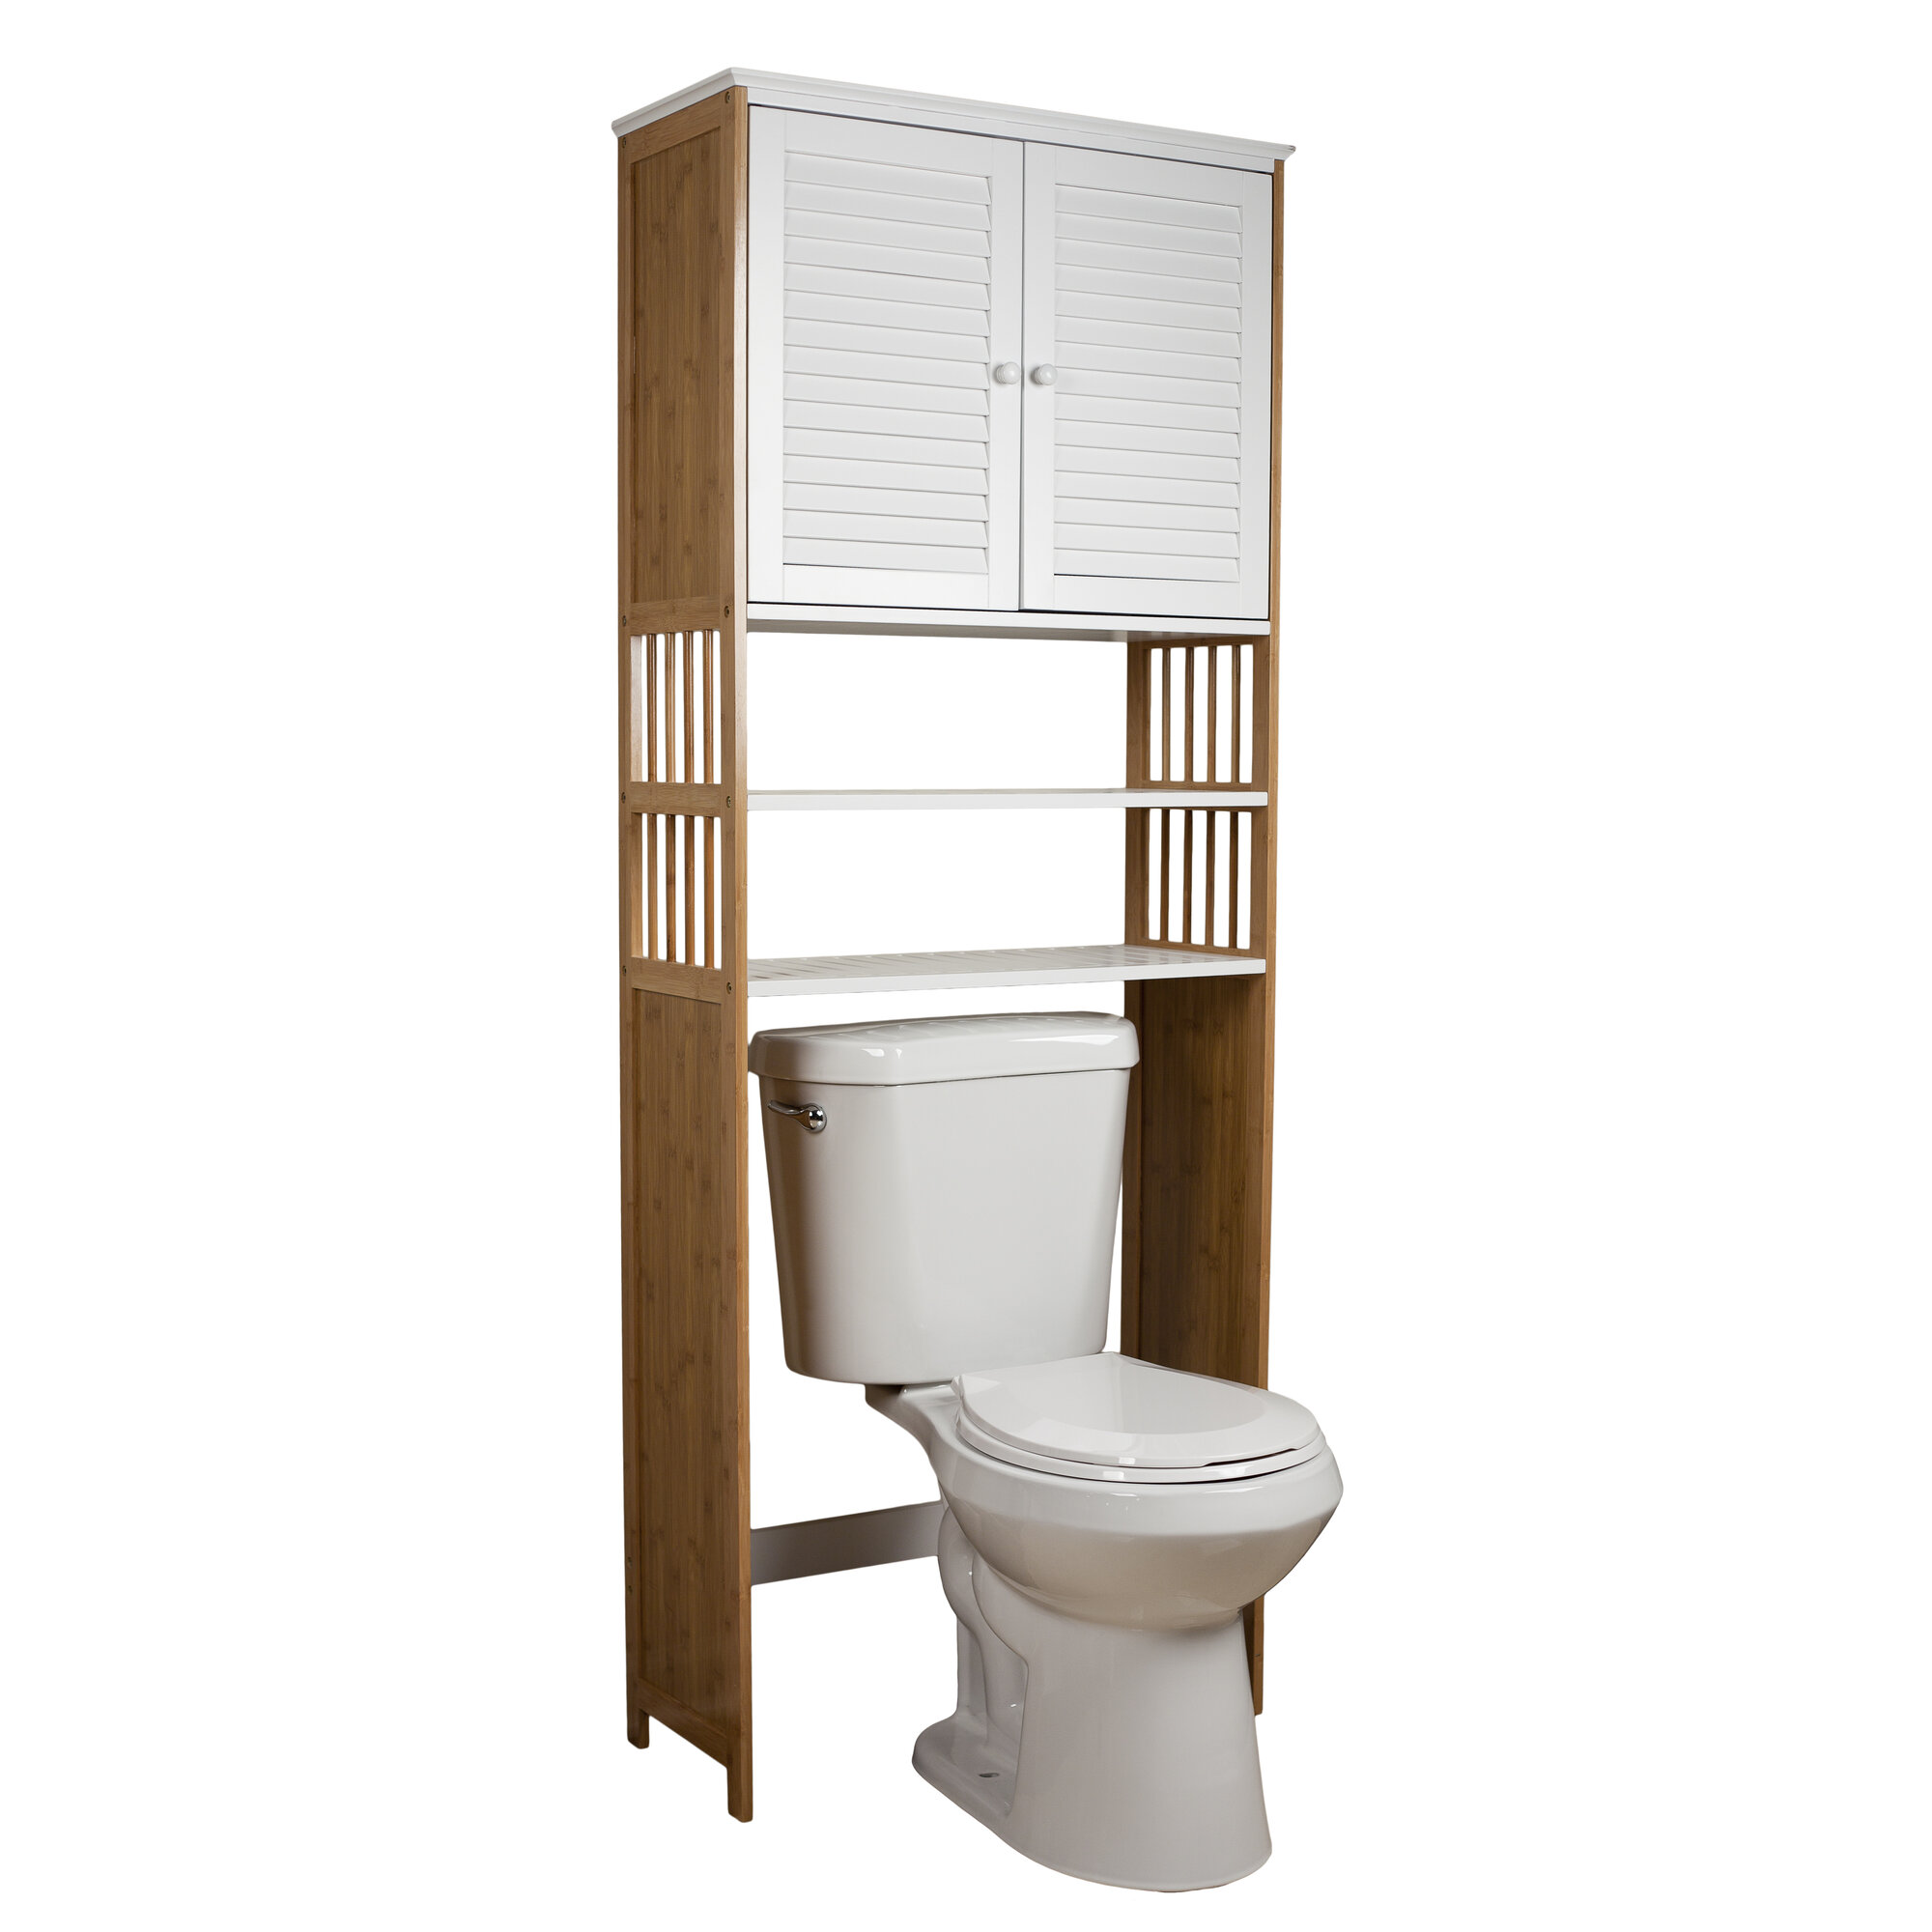 "Bamboo Bathroom Cabinet: Danya B Bamboo Bathroom 27"" X 71"" Over The Toilet Cabinet"